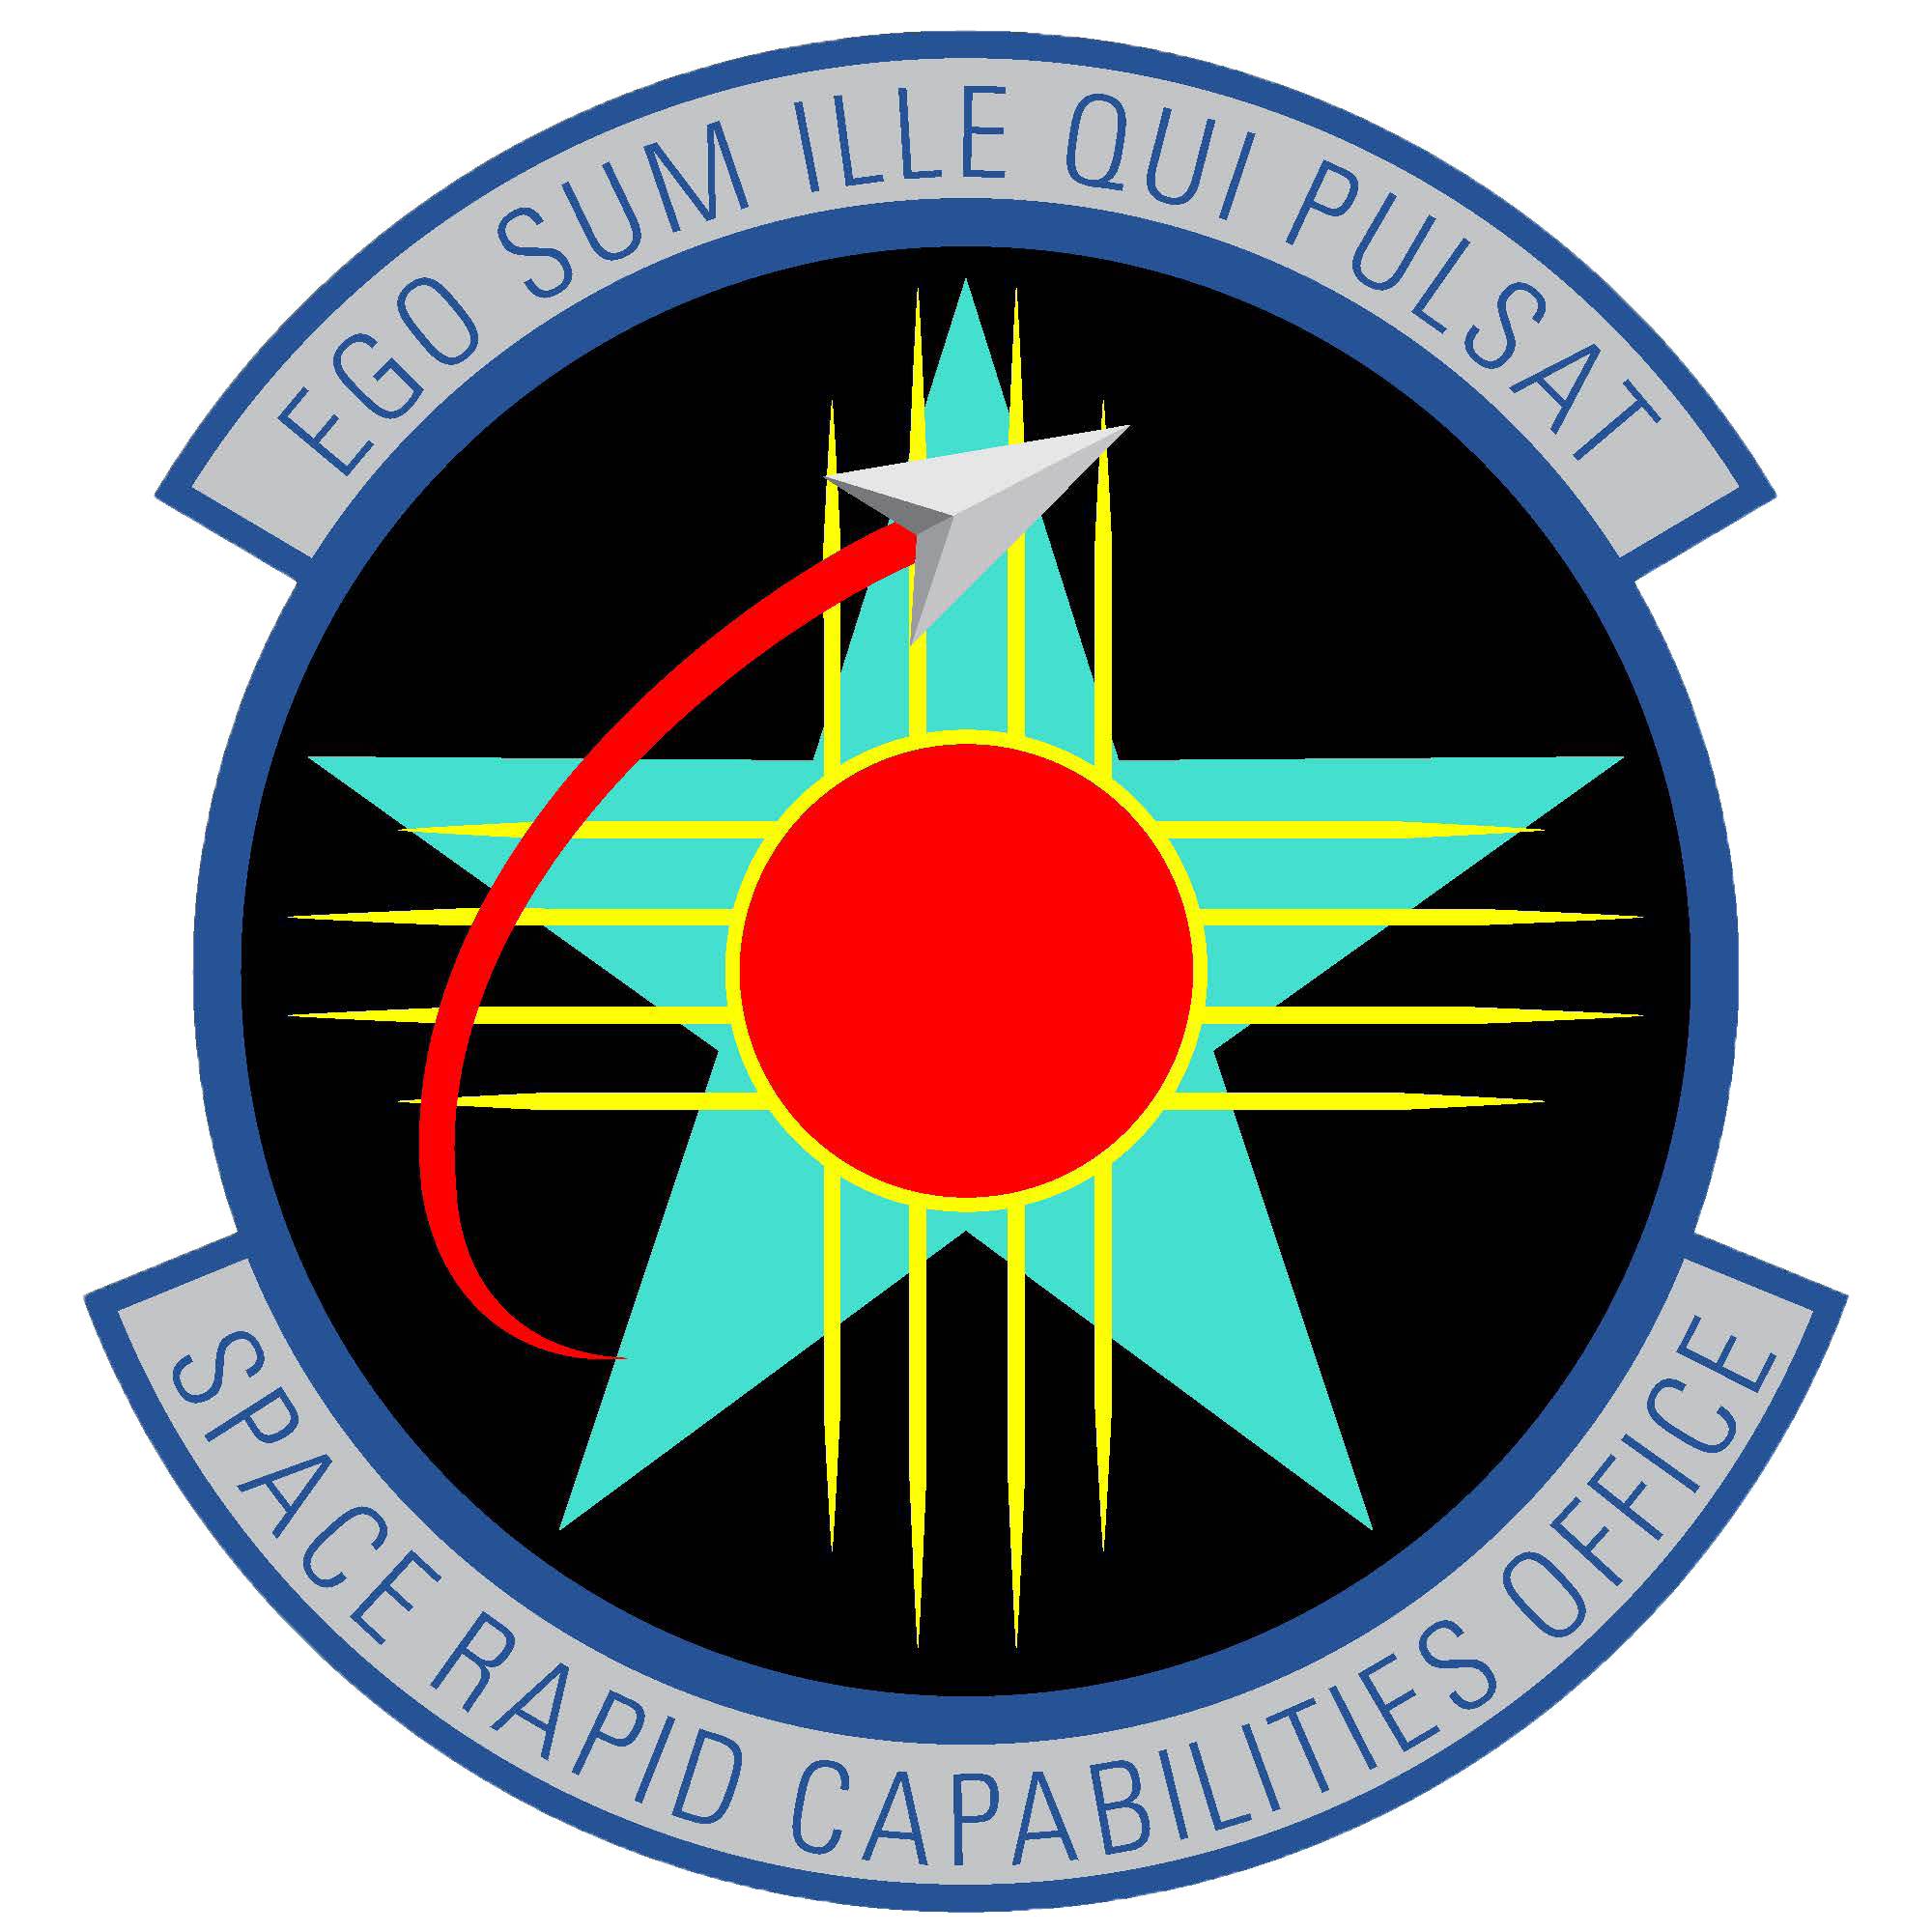 Space Rapid Capabilities Office seal